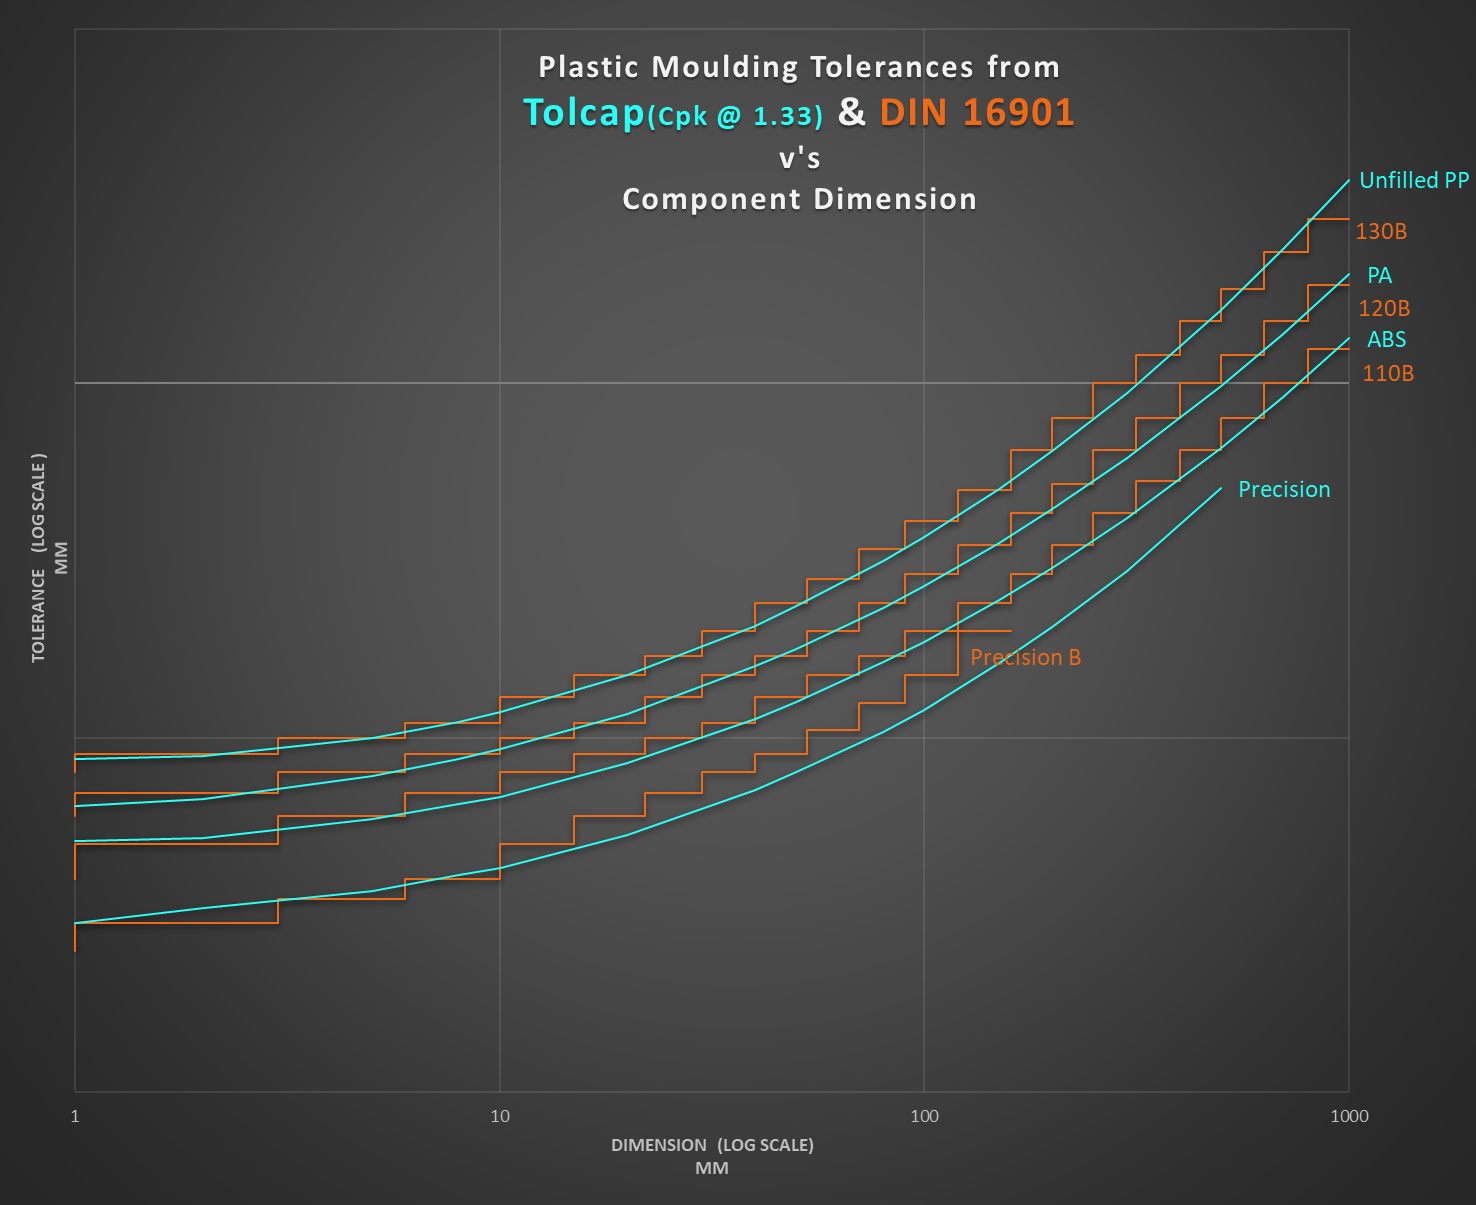 Comparison of Tolcap plastic mould tolerance suggestions with tolerances from DIN 16901